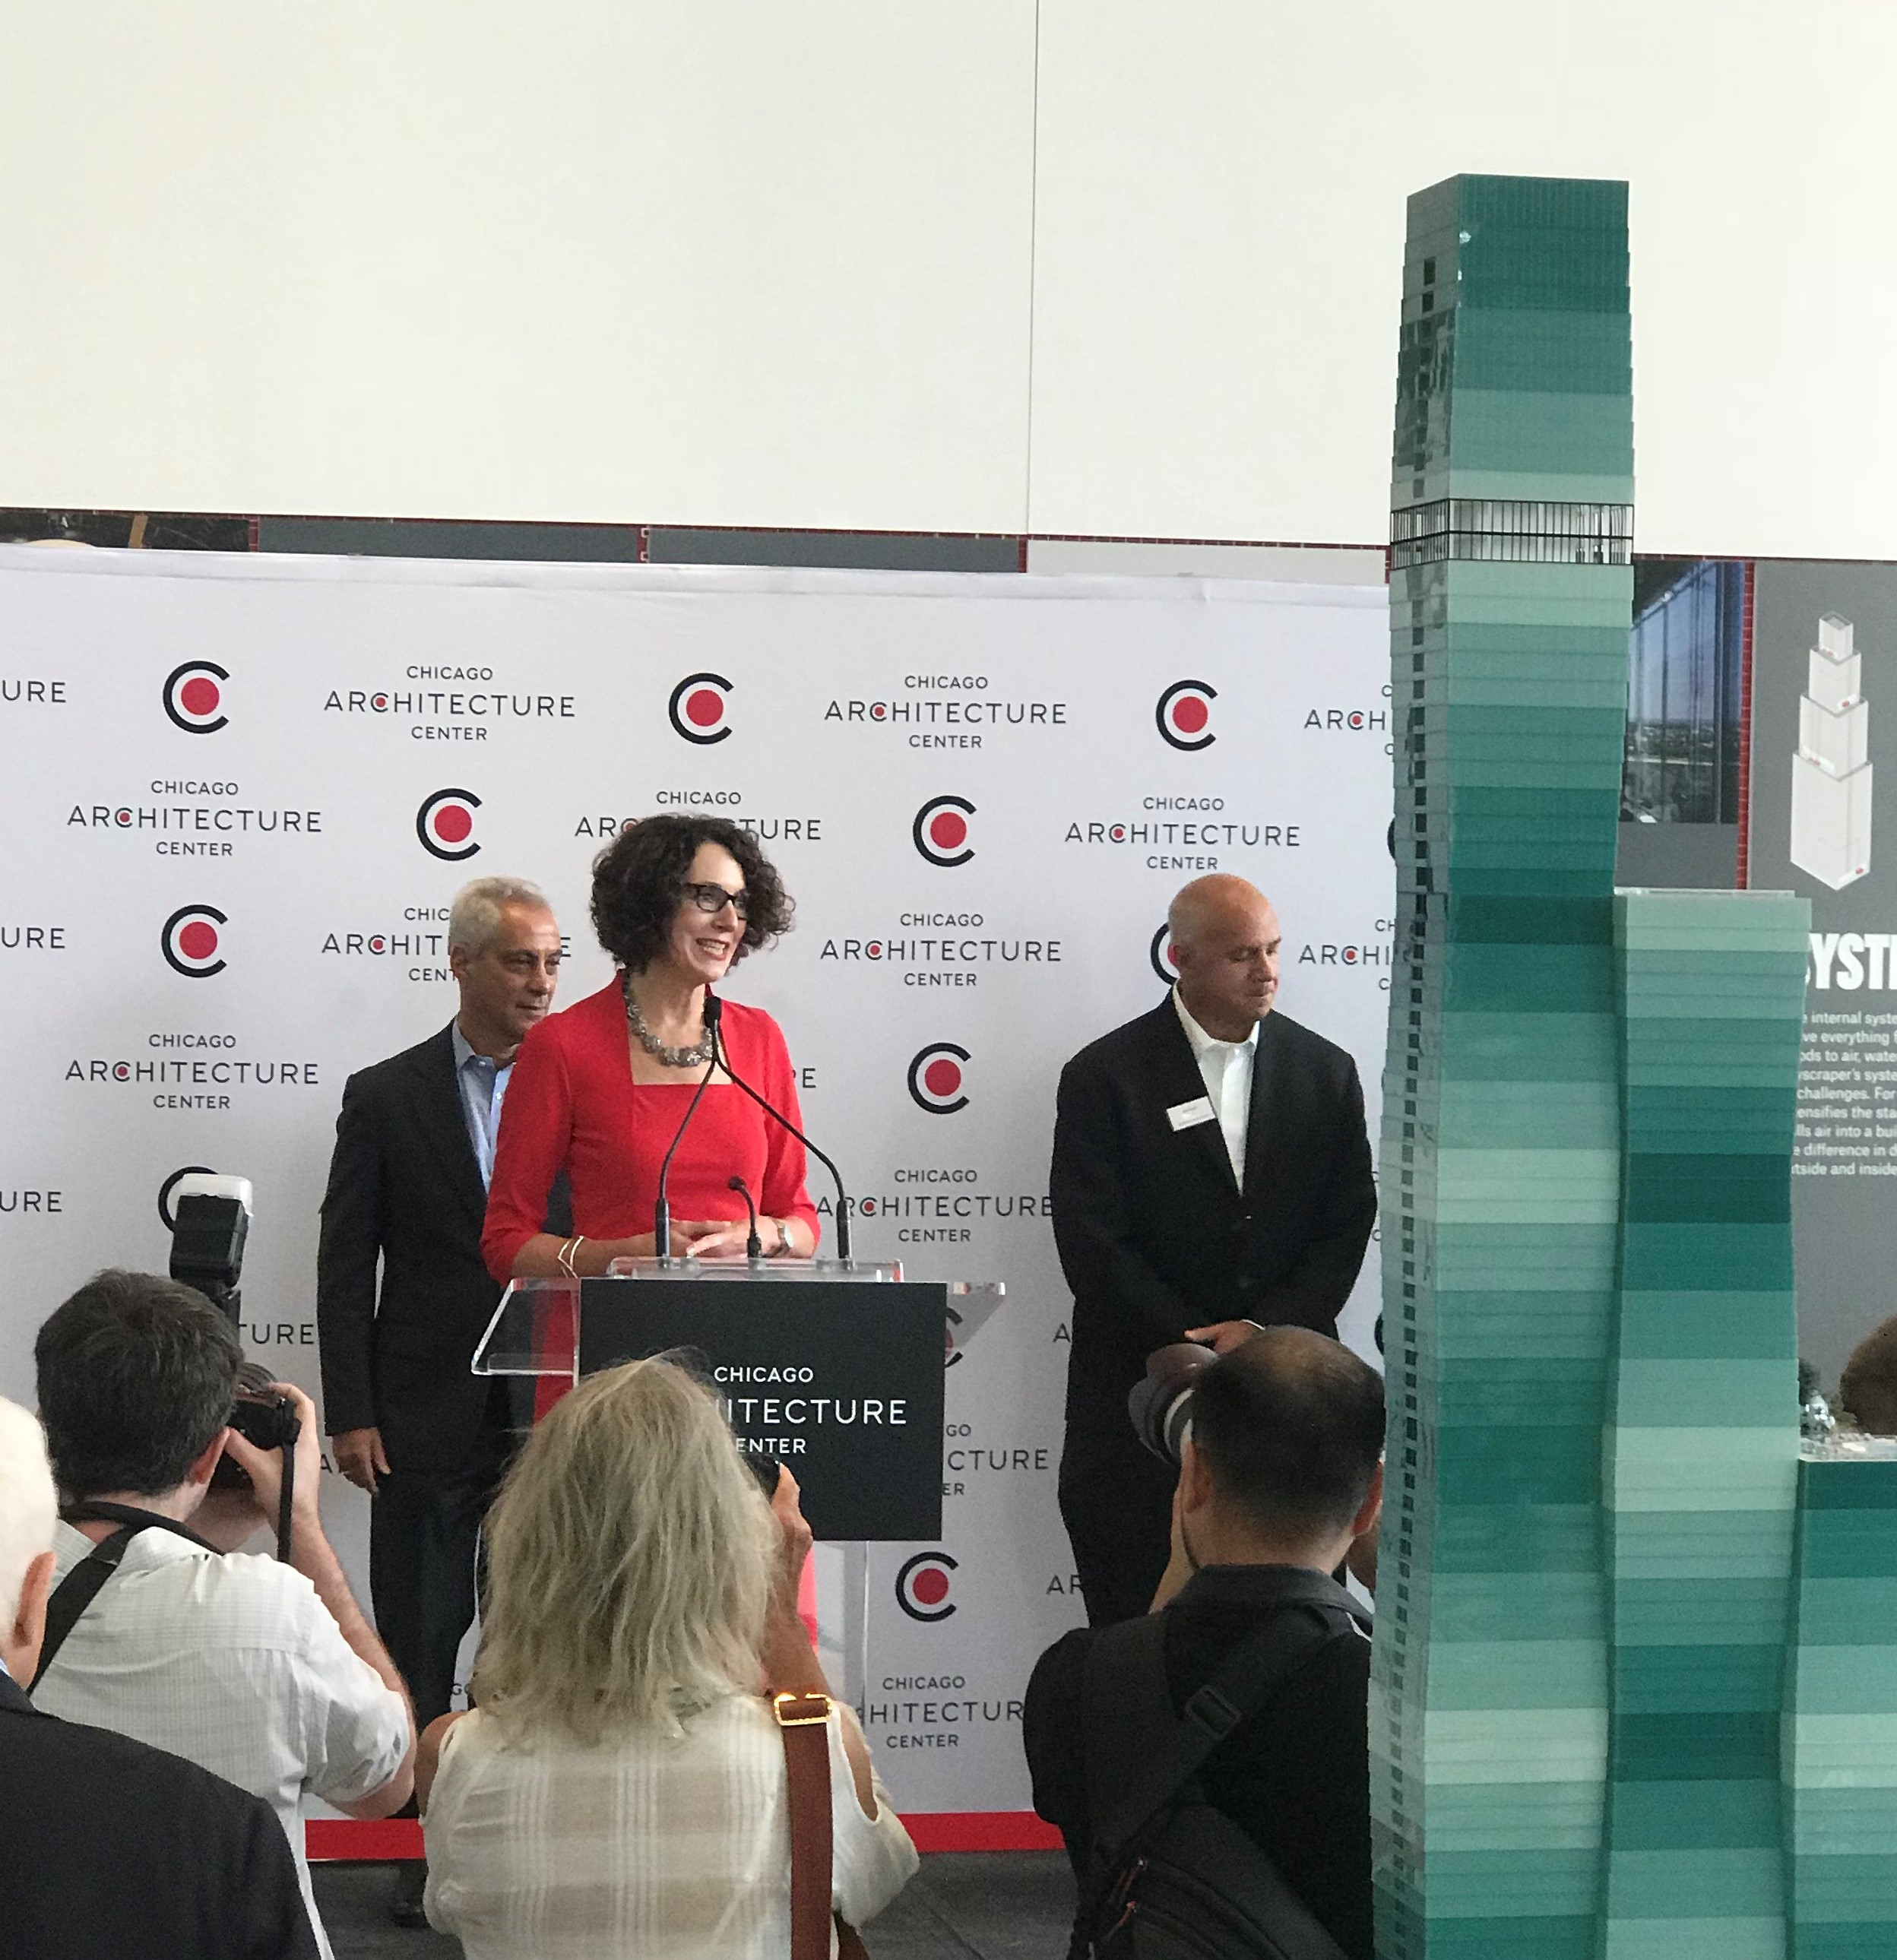 Chicago Architecture Center President and CEO Lynn Osmond tells supporters opening the new facility is a dream come true. Chicago Mayor Rahm Emanuel (left) and Architect Gordon Gill (right) joined Osmond for this week's ribbon cutting ceremony.